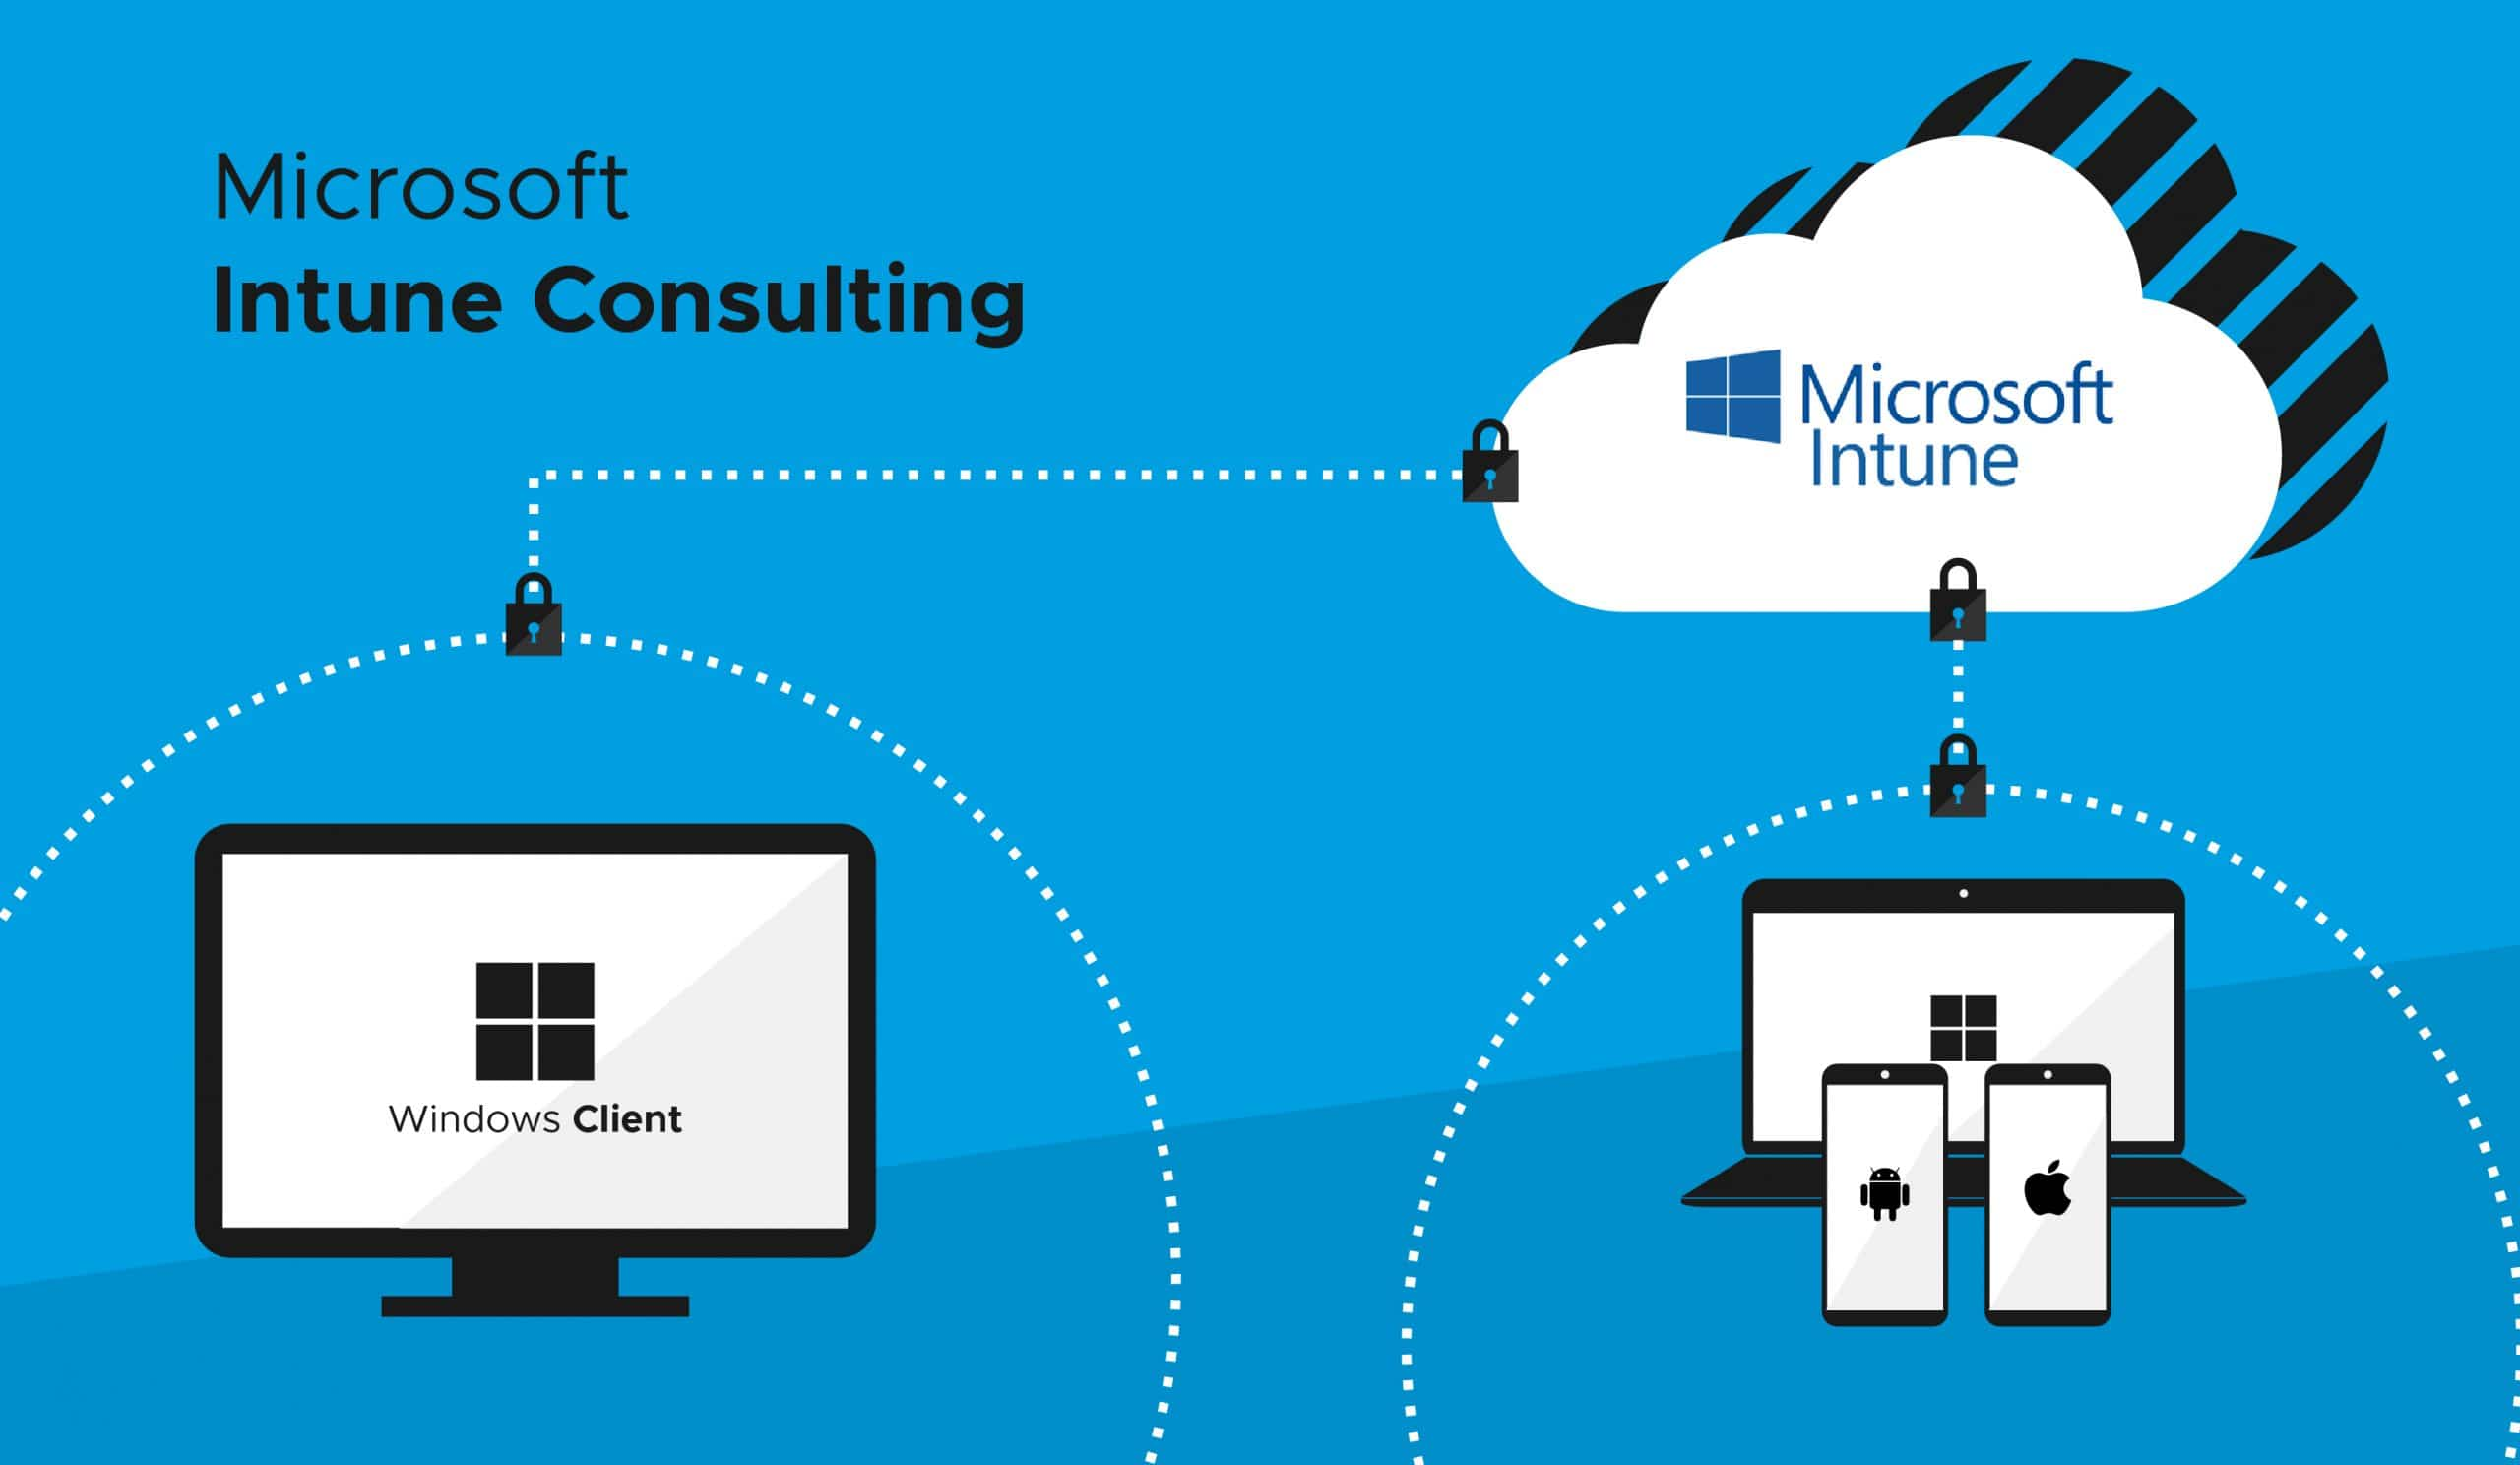 Microsoft Intune Consulting by Siller